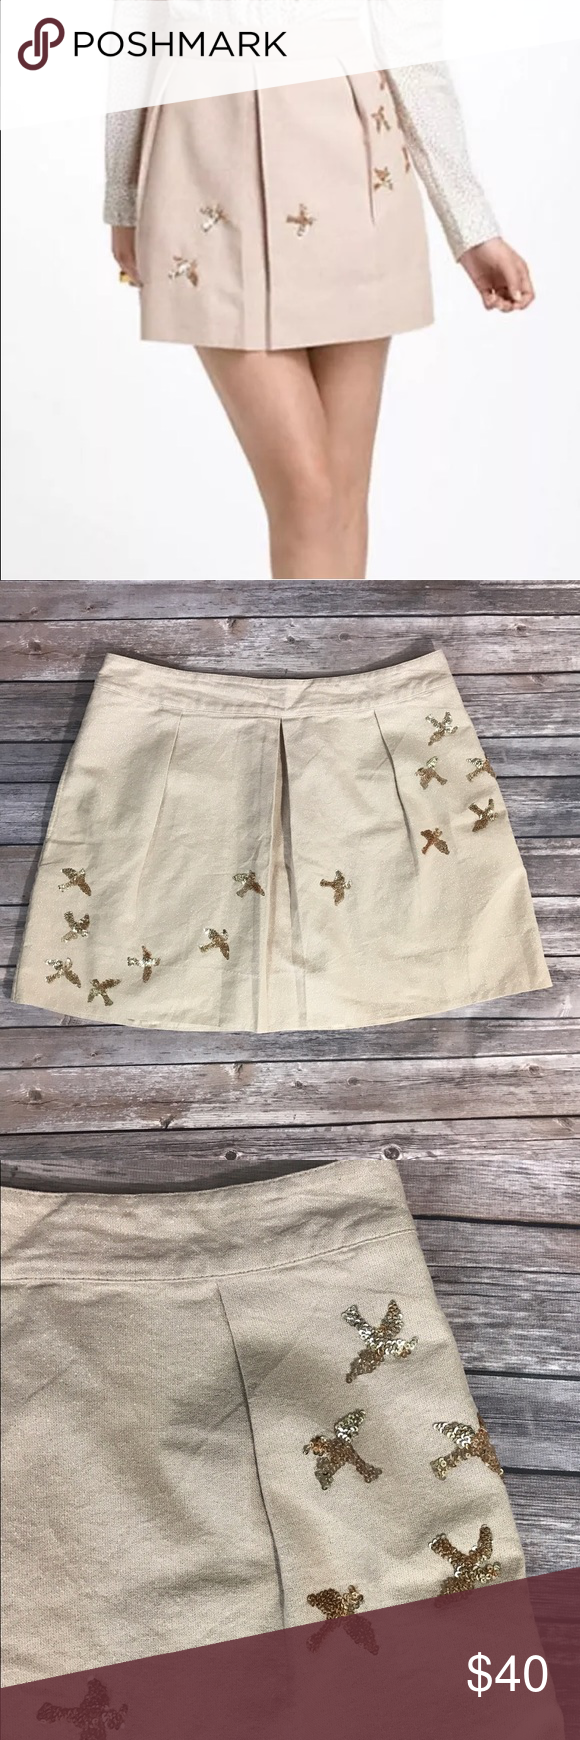 Leifnotes Anthropologie Skirt 14 Mini Migration Measurements: (in inches) - Waist: 34 - Length: 17  Good, gently used condition Anthropologie Skirts Mini